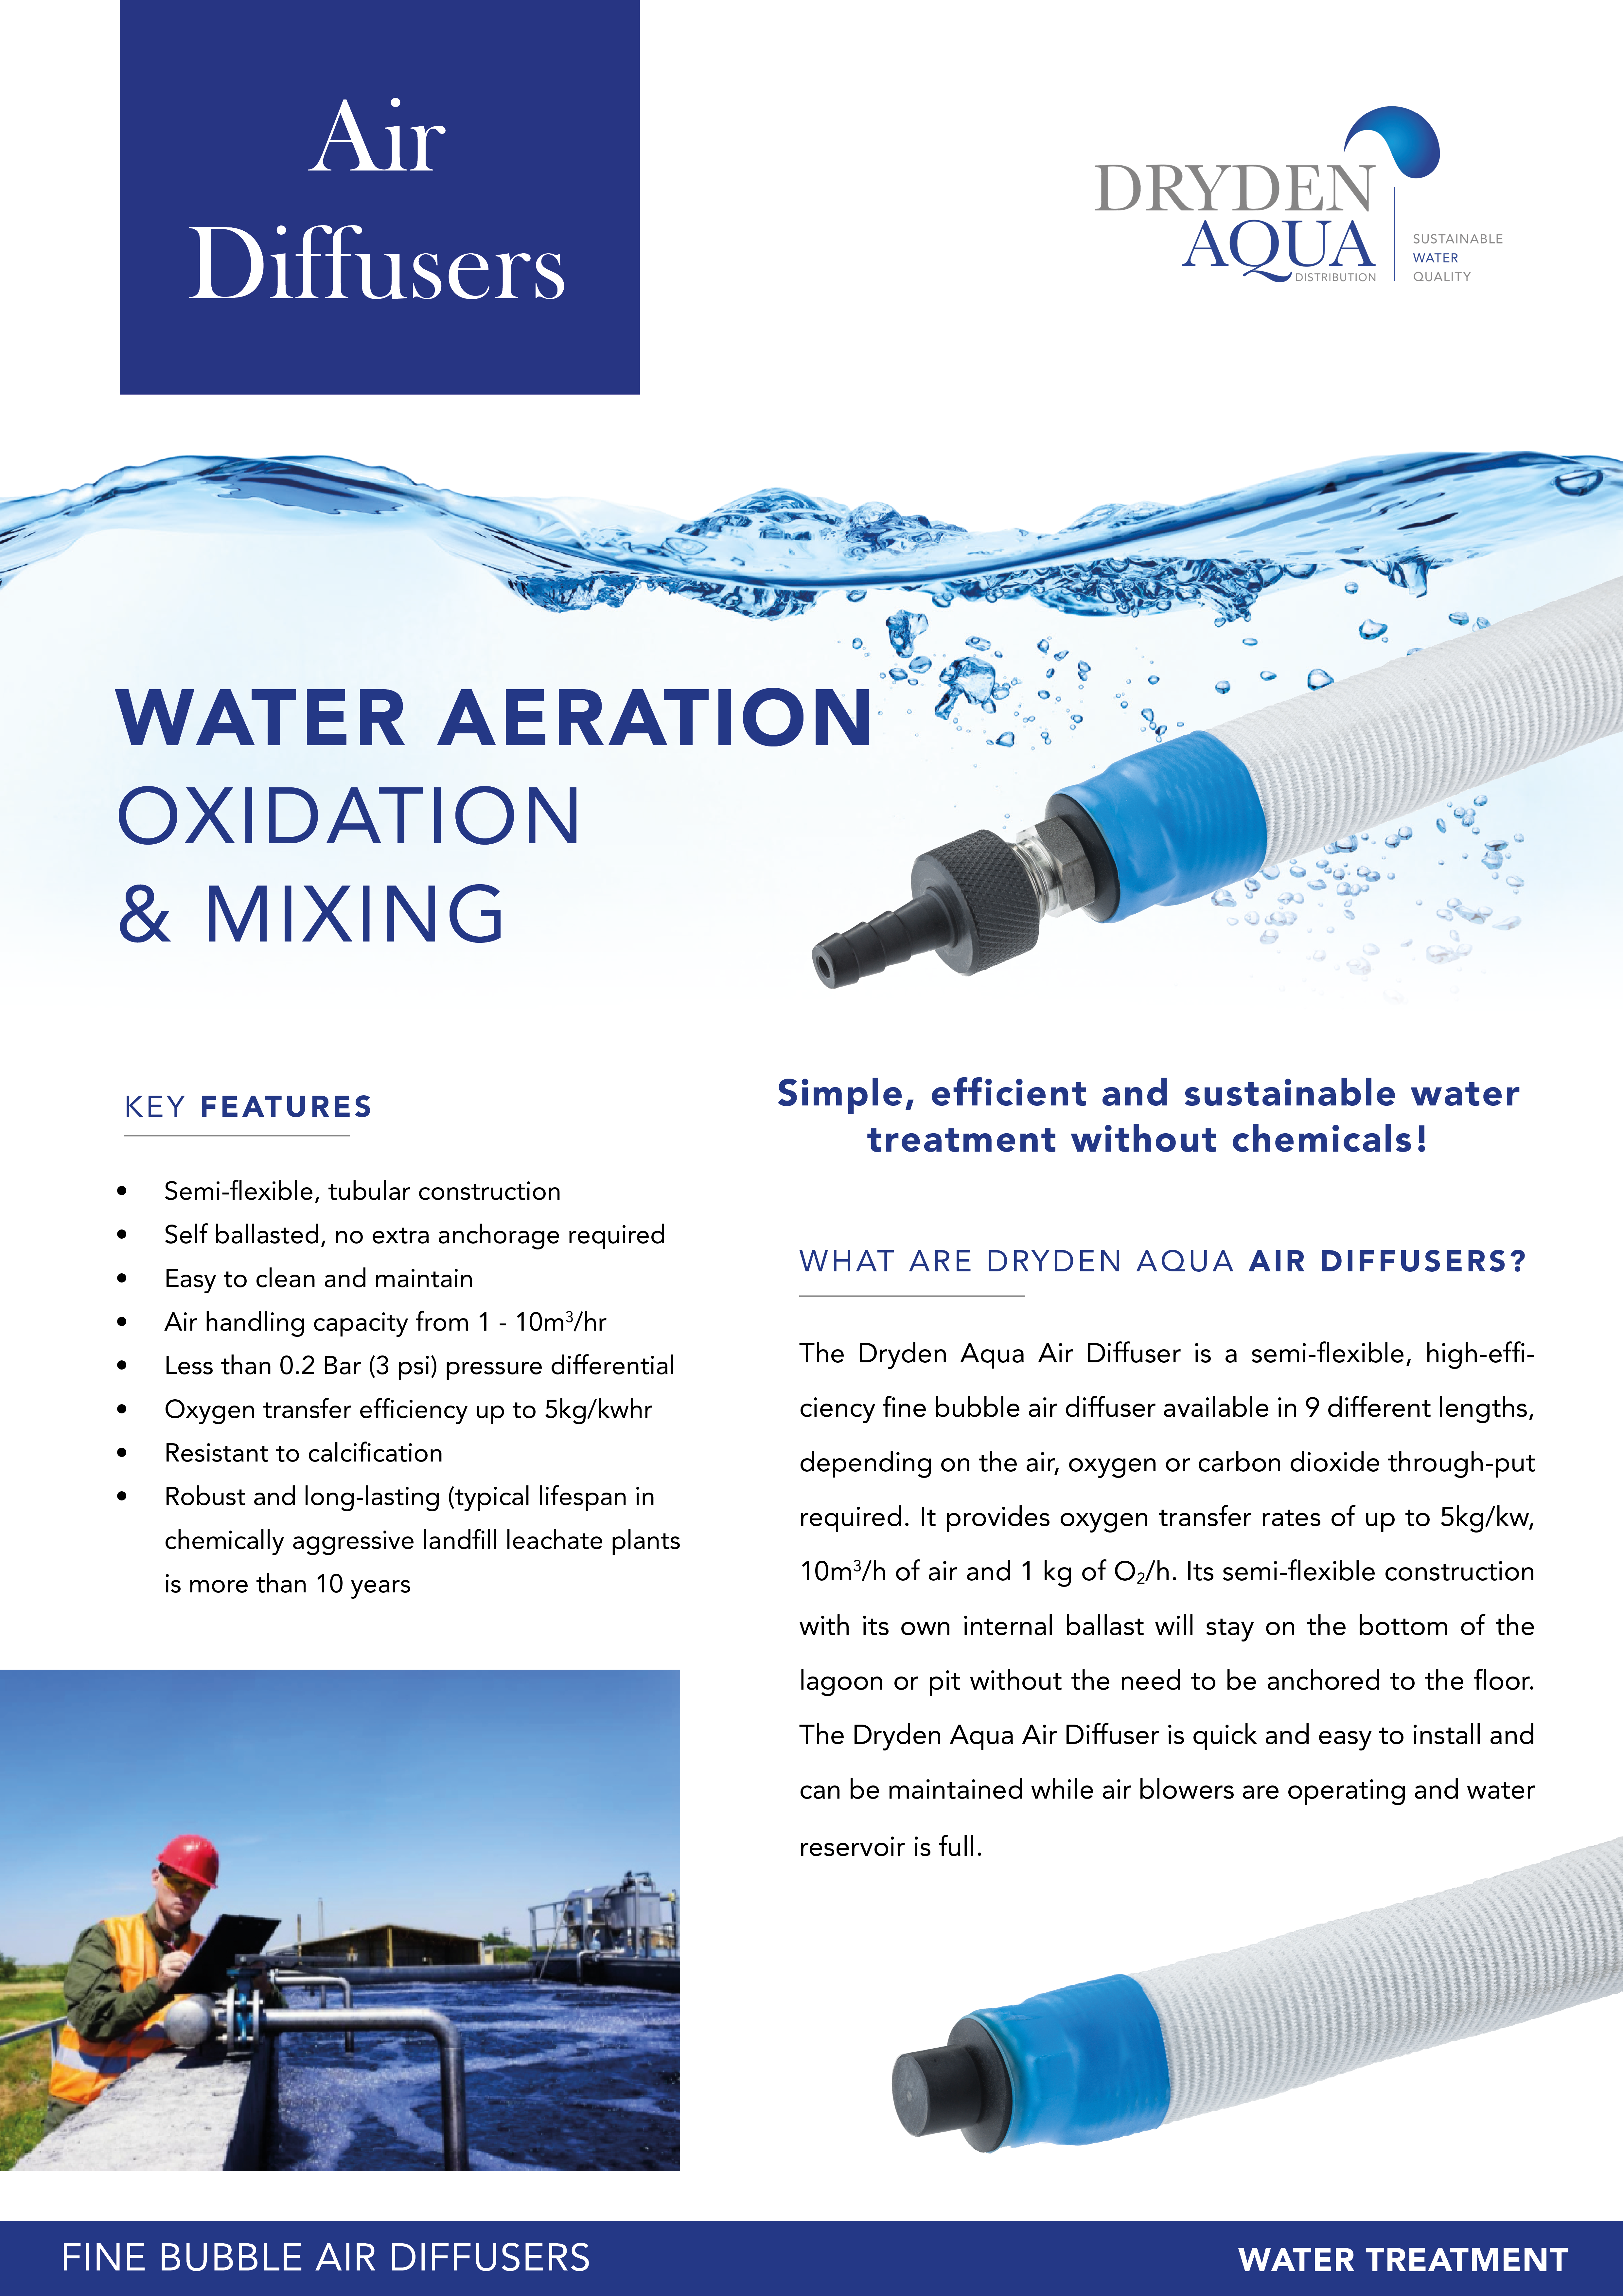 Air diffuser - Water Treatment 2 pager